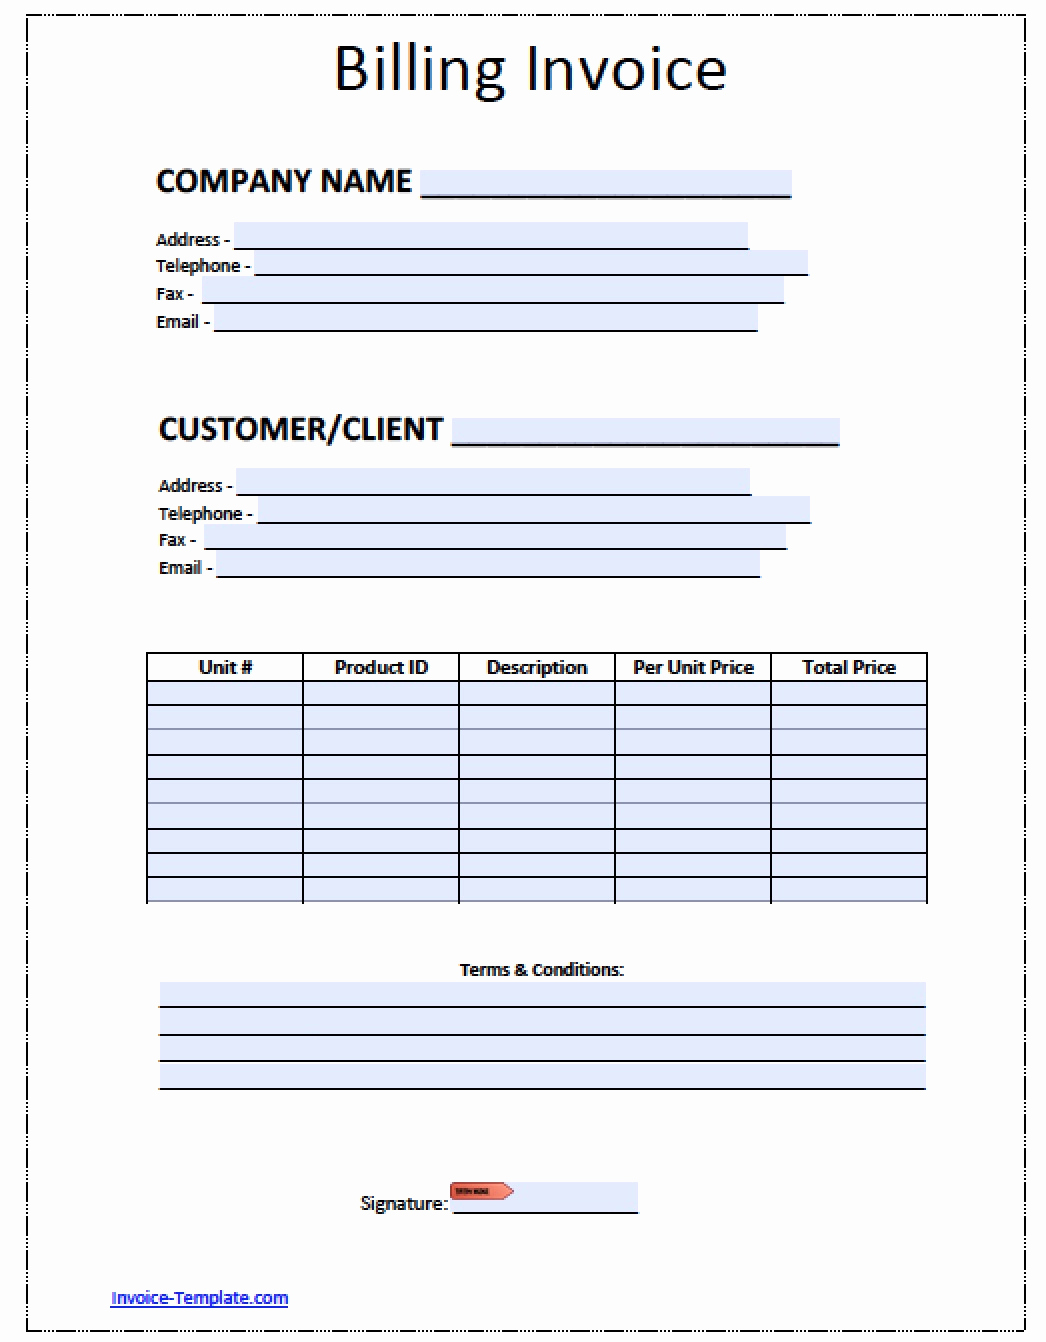 Microsoft Invoice Template Free New Free Blank Invoice Template for Excel